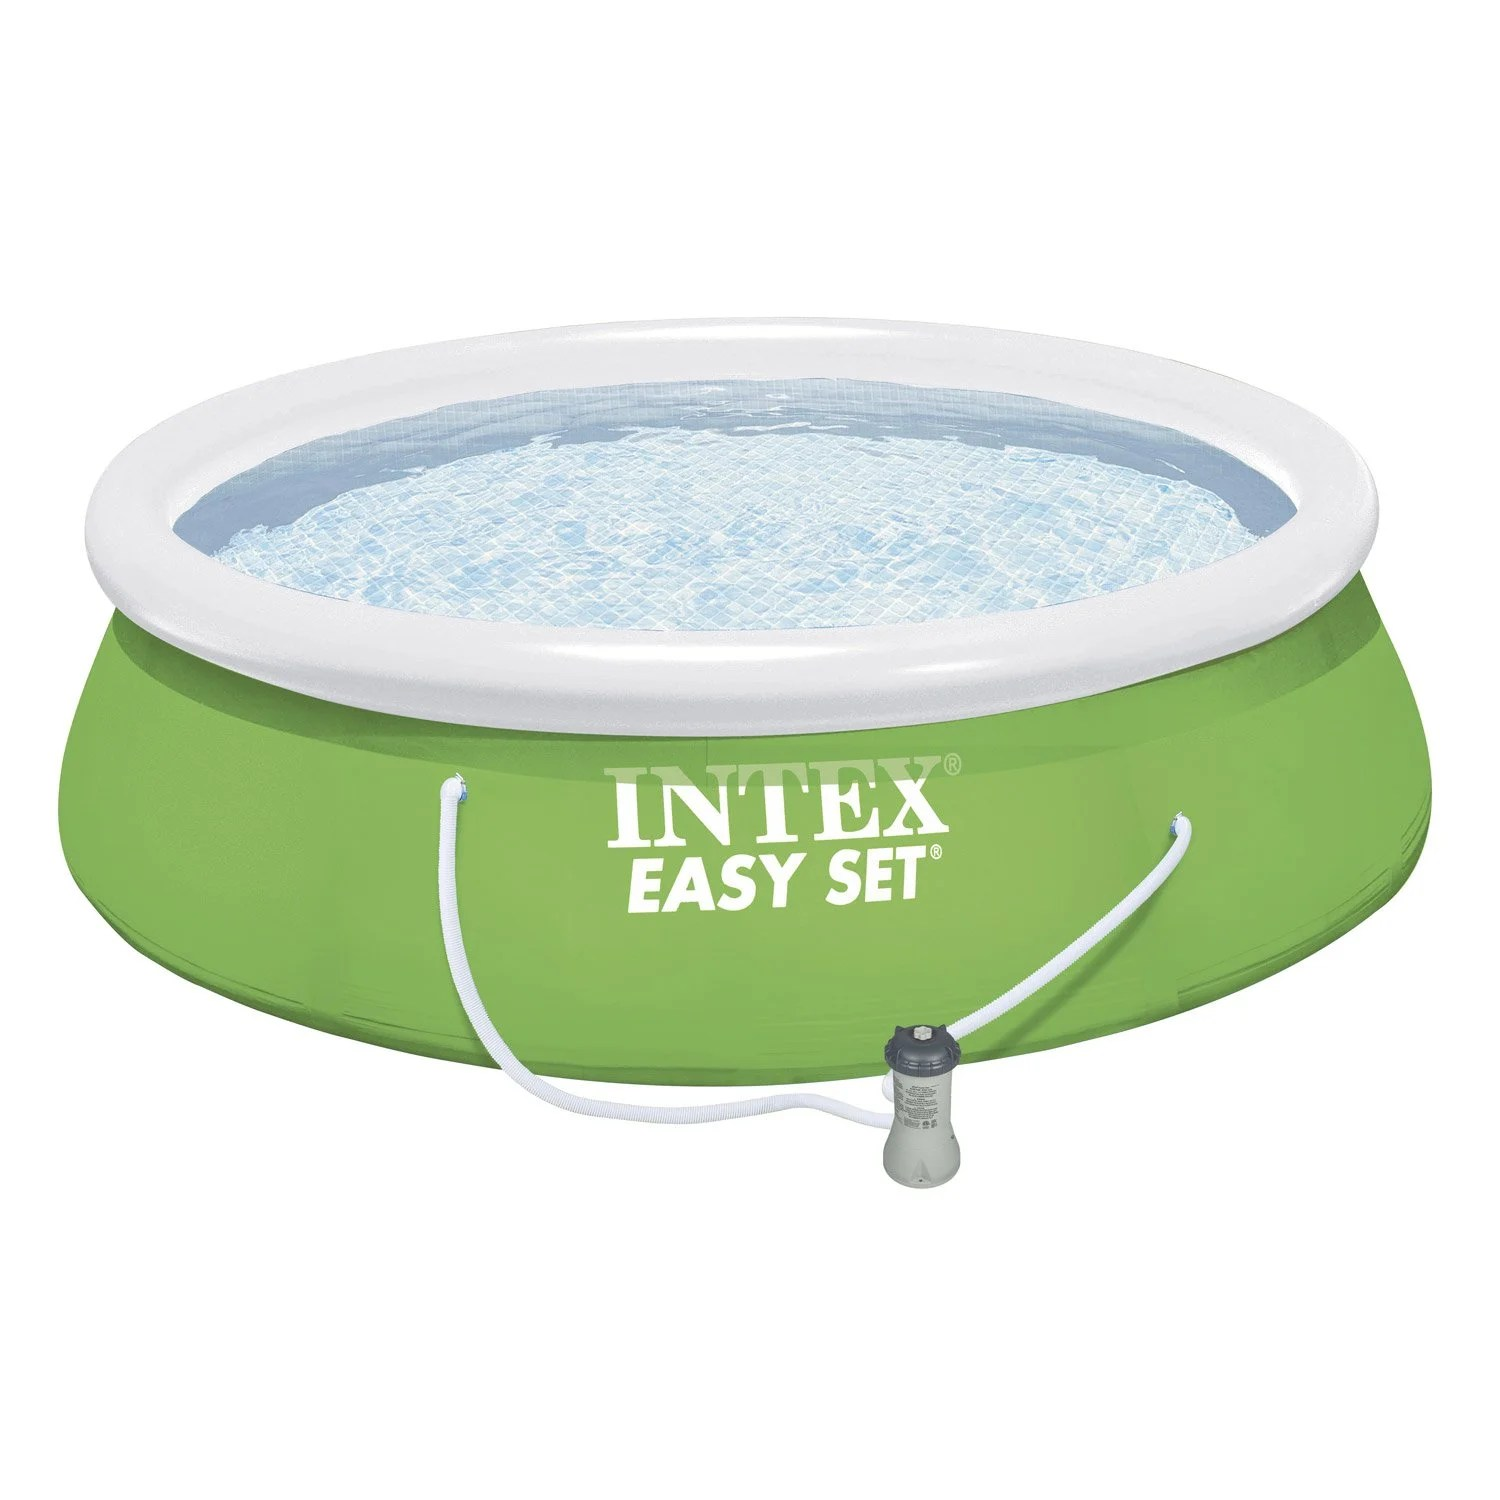 Achat Piscine Intex Piscine Hors Sol Autoportante Gonflable Suppression Intex